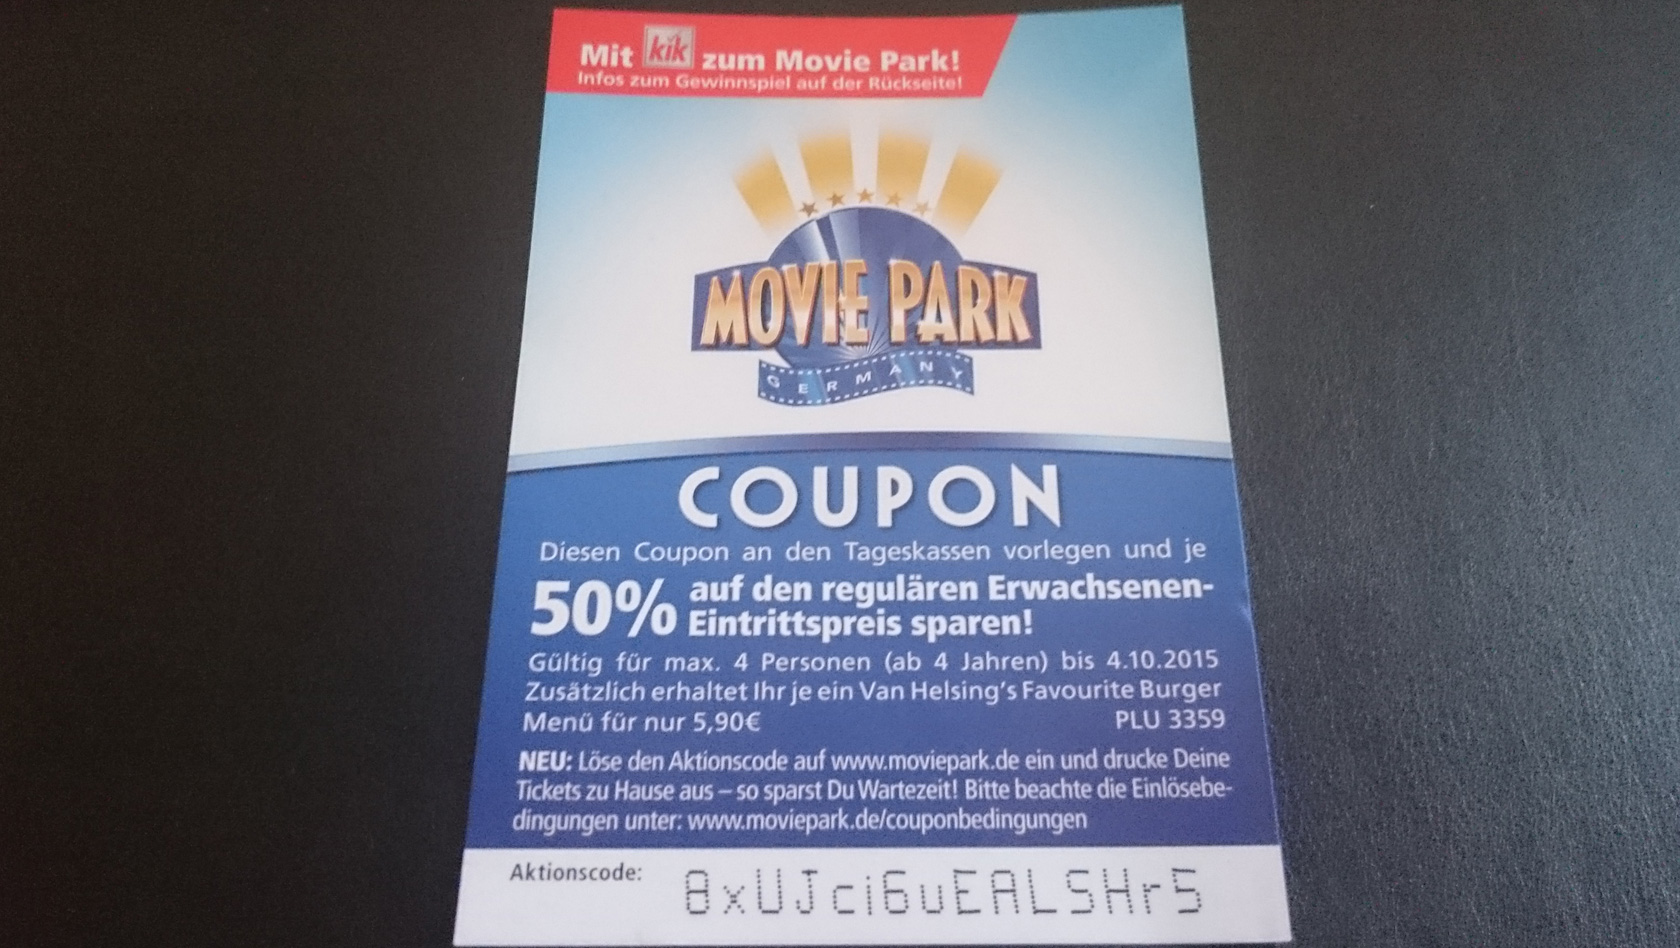 movie park coupon 2015 von kik 50 prozent rabatt sichern. Black Bedroom Furniture Sets. Home Design Ideas